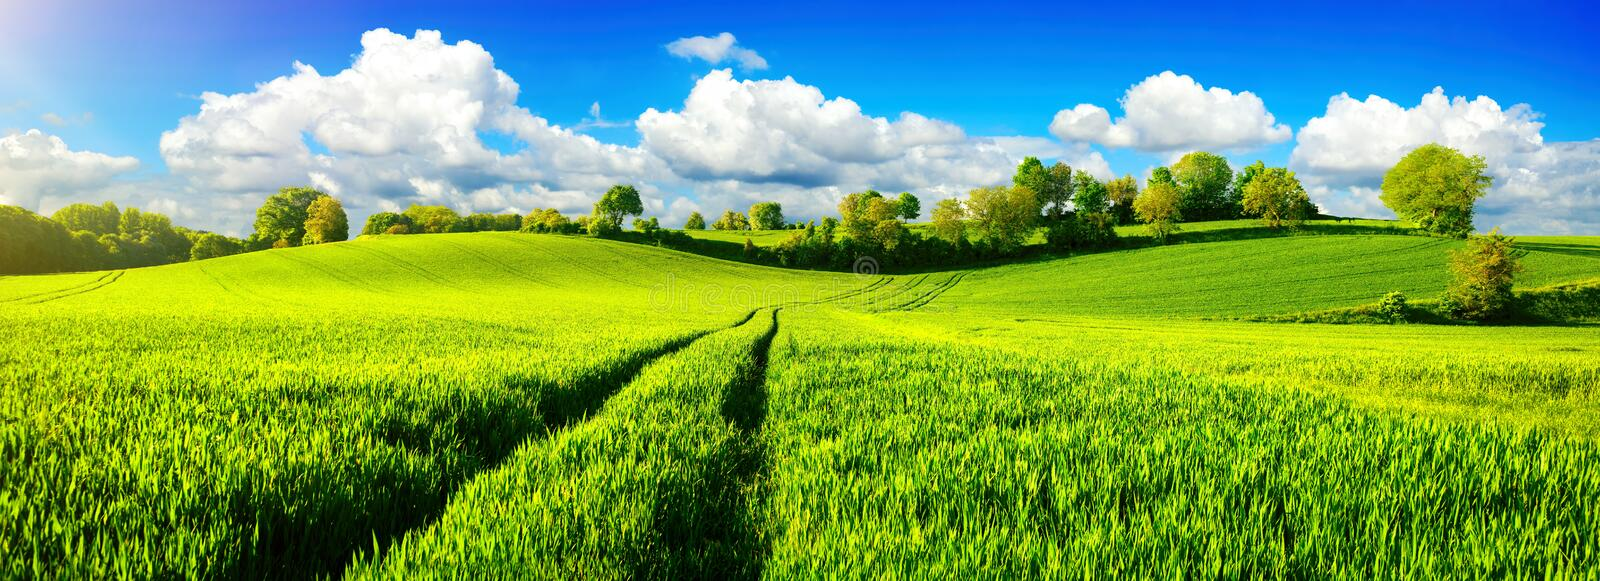 Idyllic green fields with vibrant blue sky stock photography